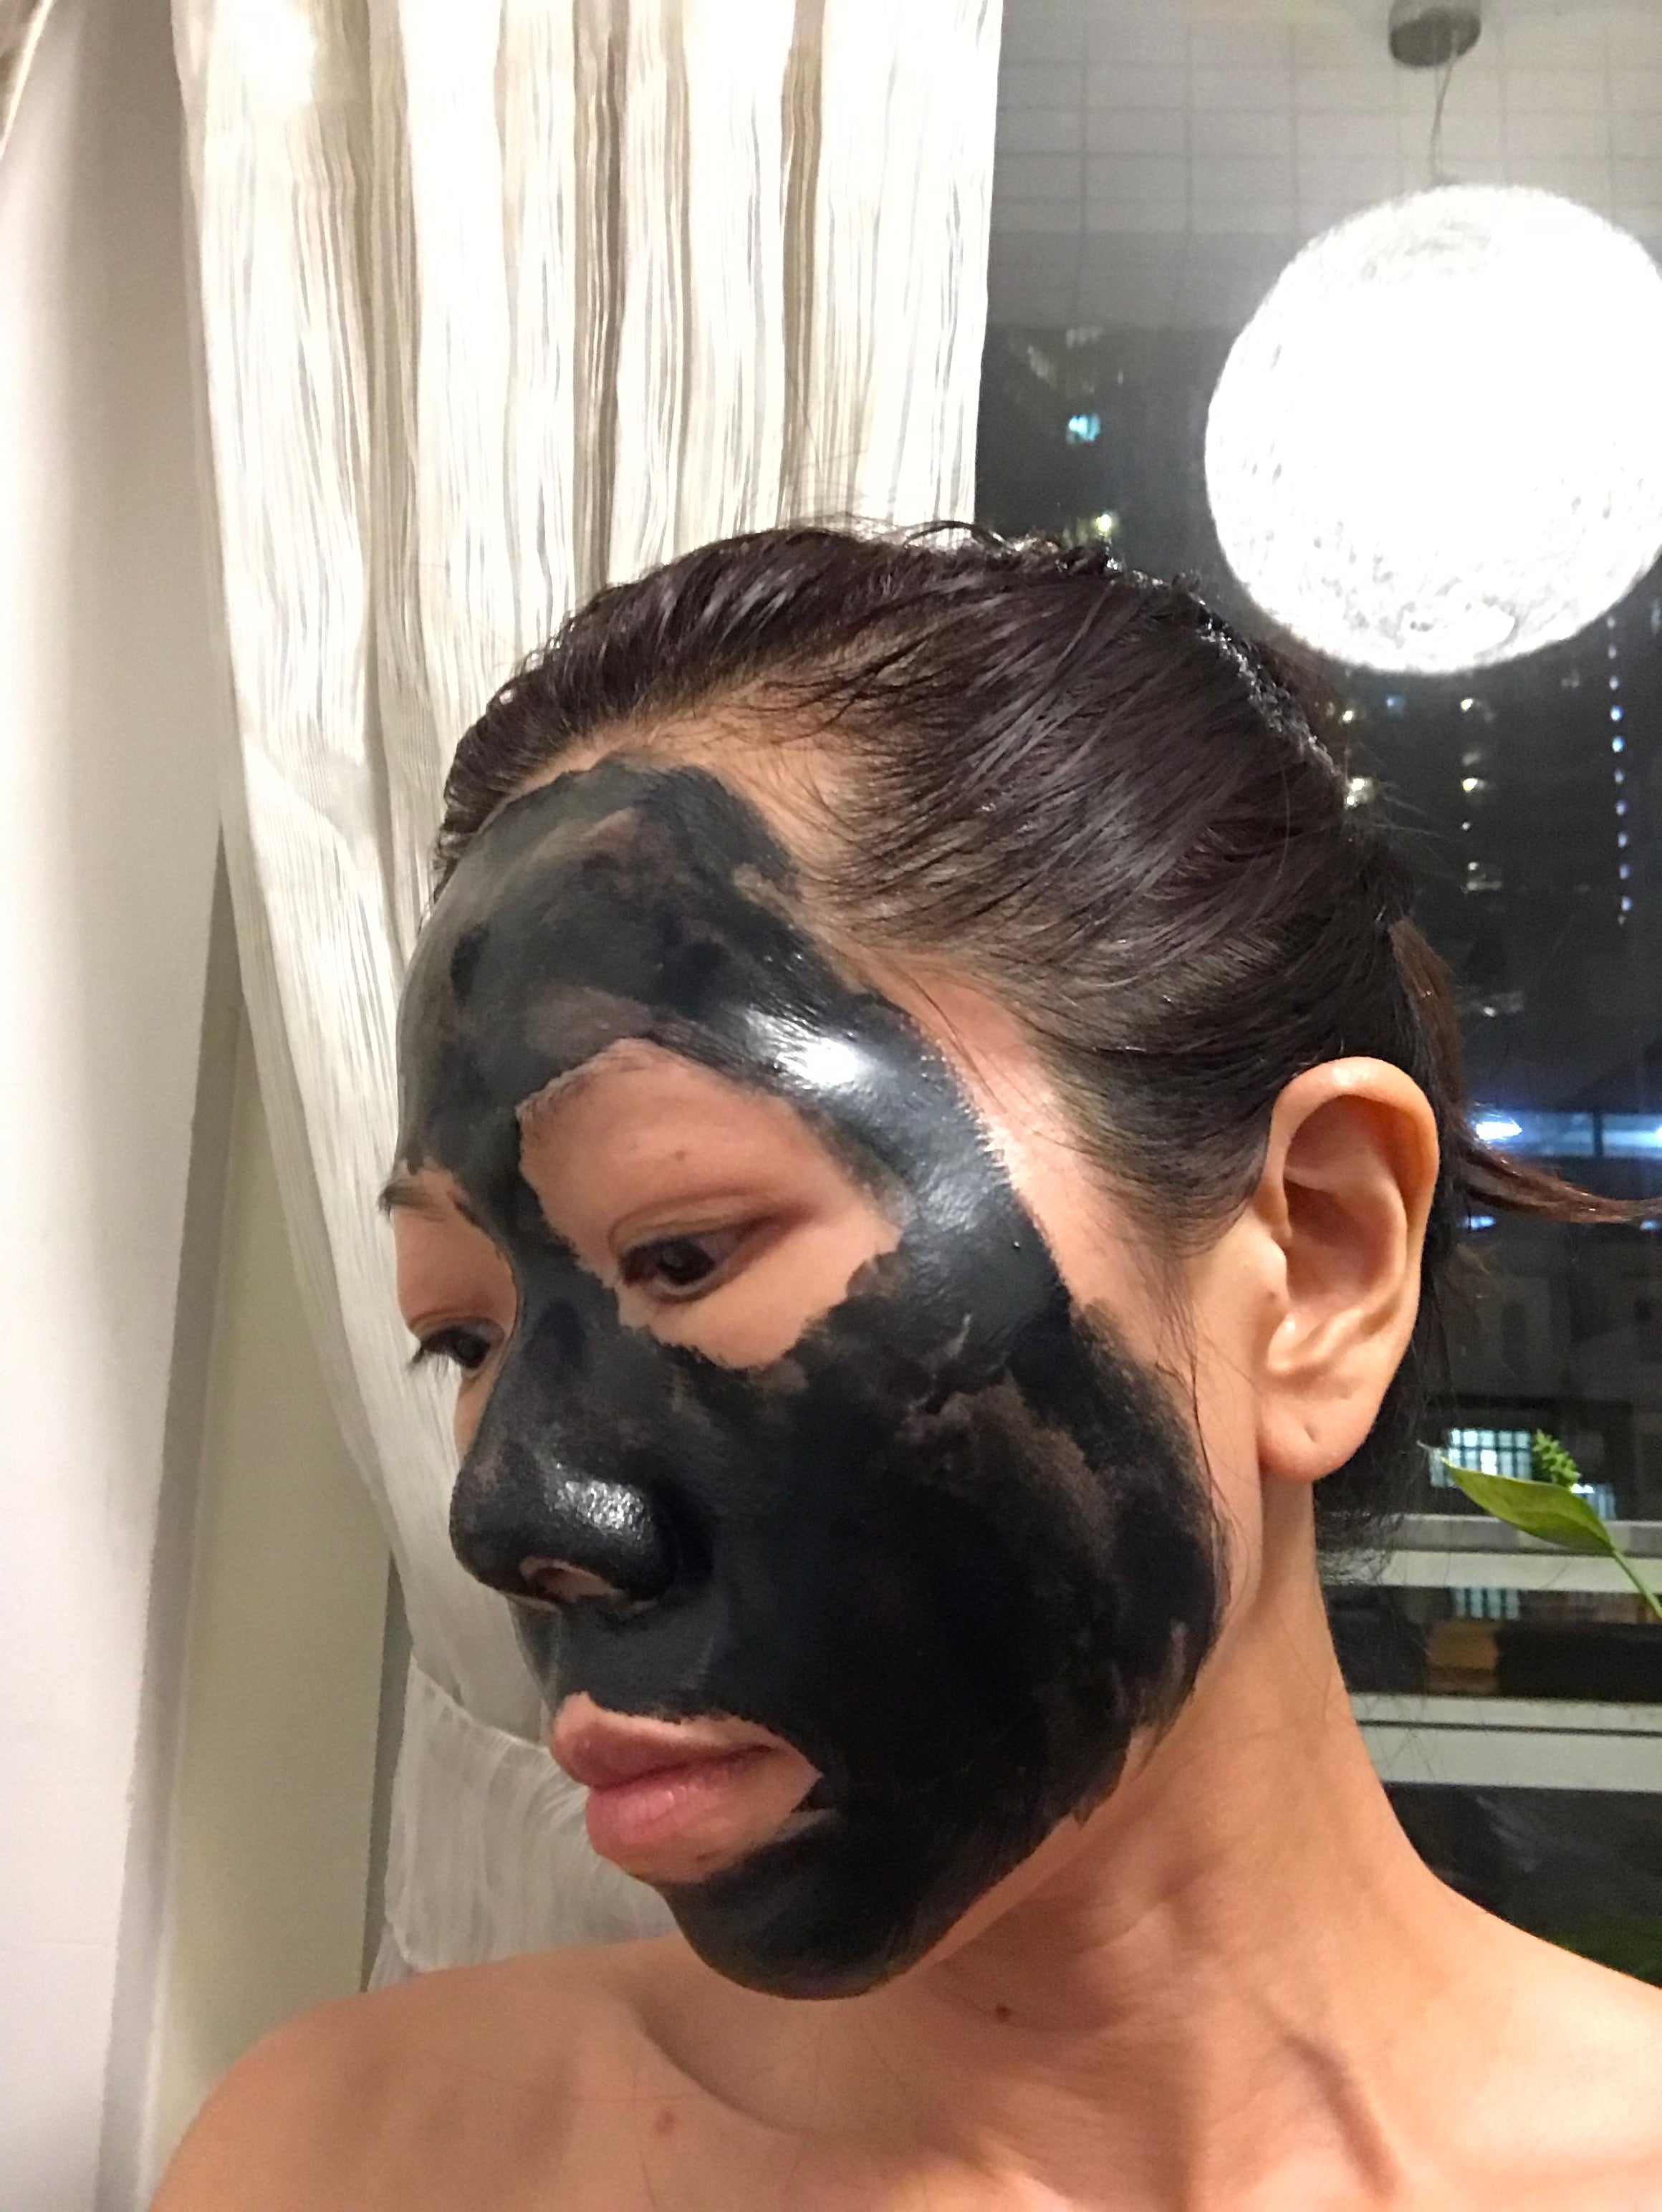 Review on Kose Sekkisei White Clearing Mask. Removes blackheads and refines pores. Suitable for oily and combination skin. Peeling Mask. Made in Japan. Shipped from USA by BeautyKat.com